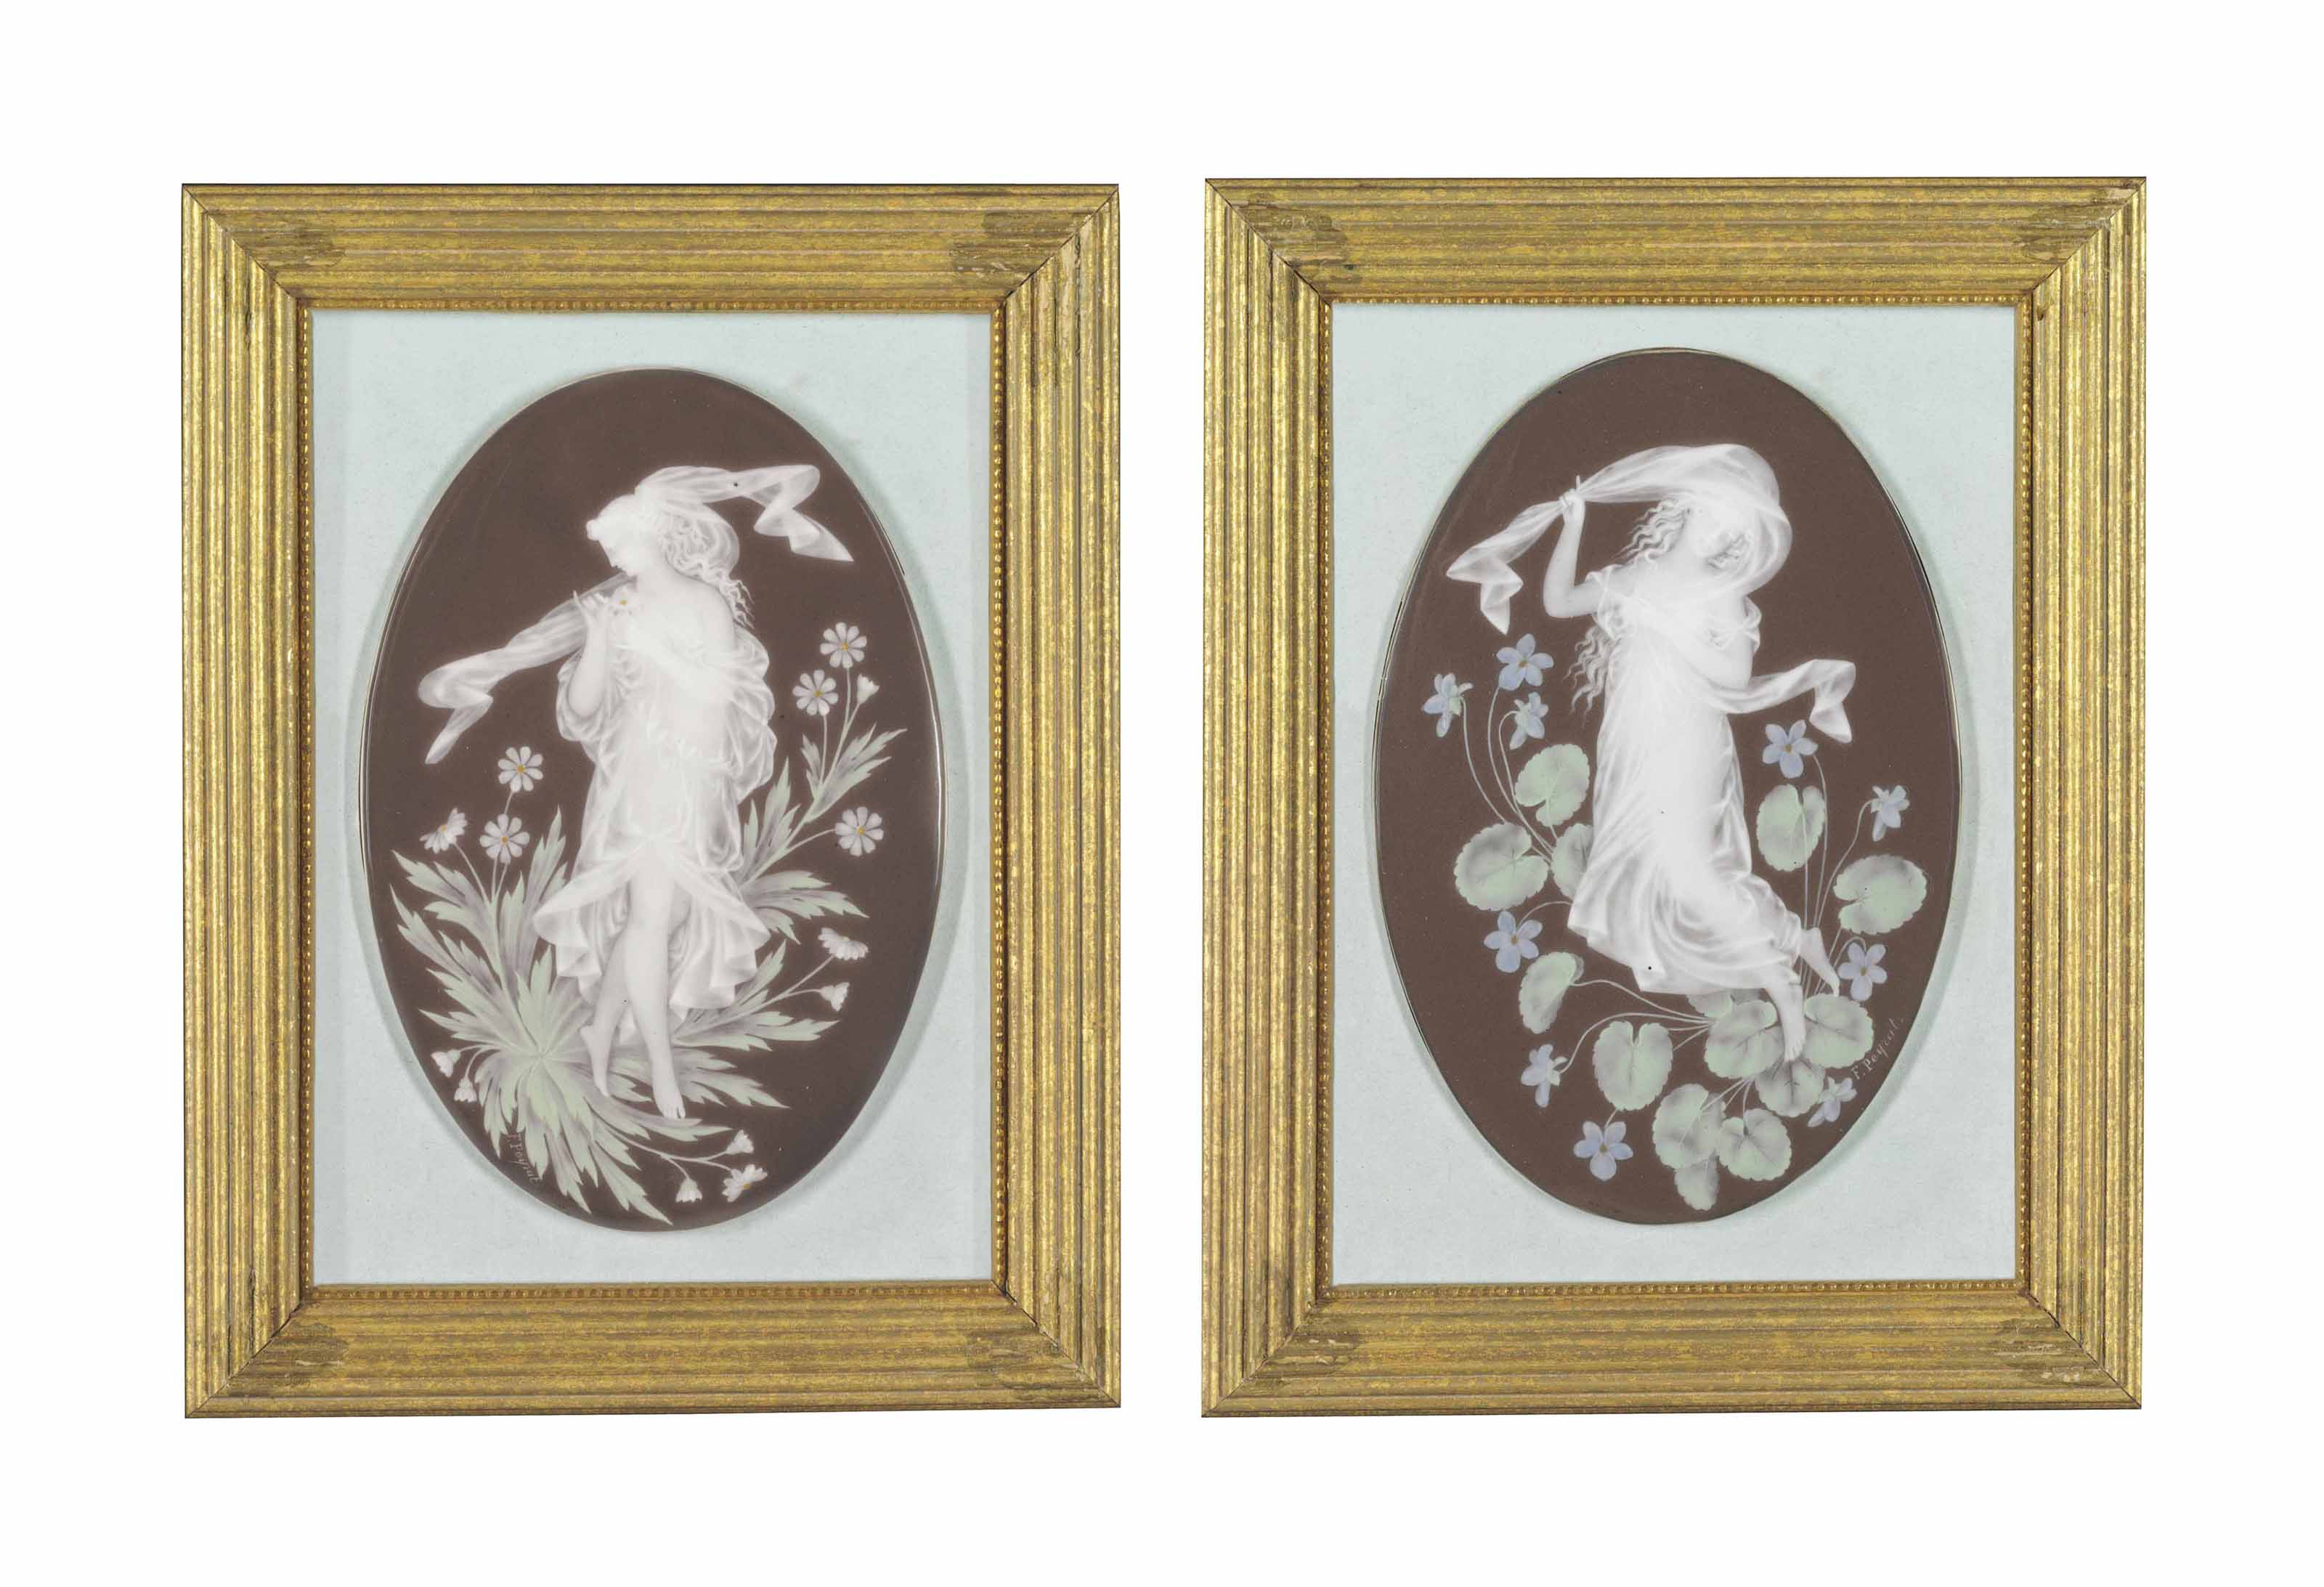 A PAIR OF LIMOGES PATE-SUR-PATE CHOCOLATE-BROWN GROUND OVAL PLAQUES